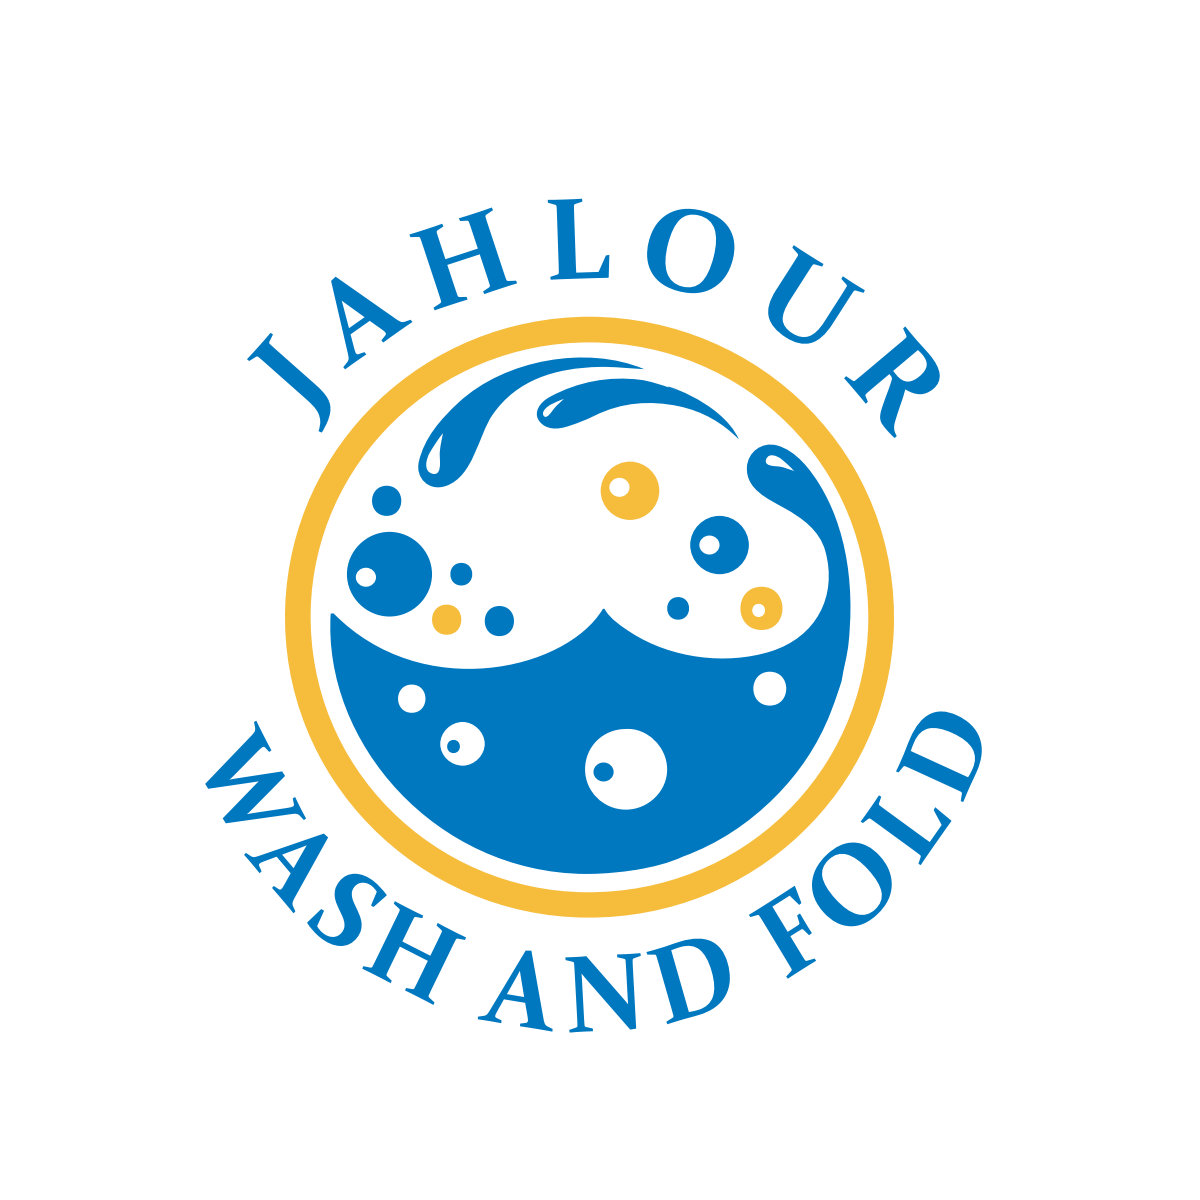 Create a logo and business card for a laundromat.